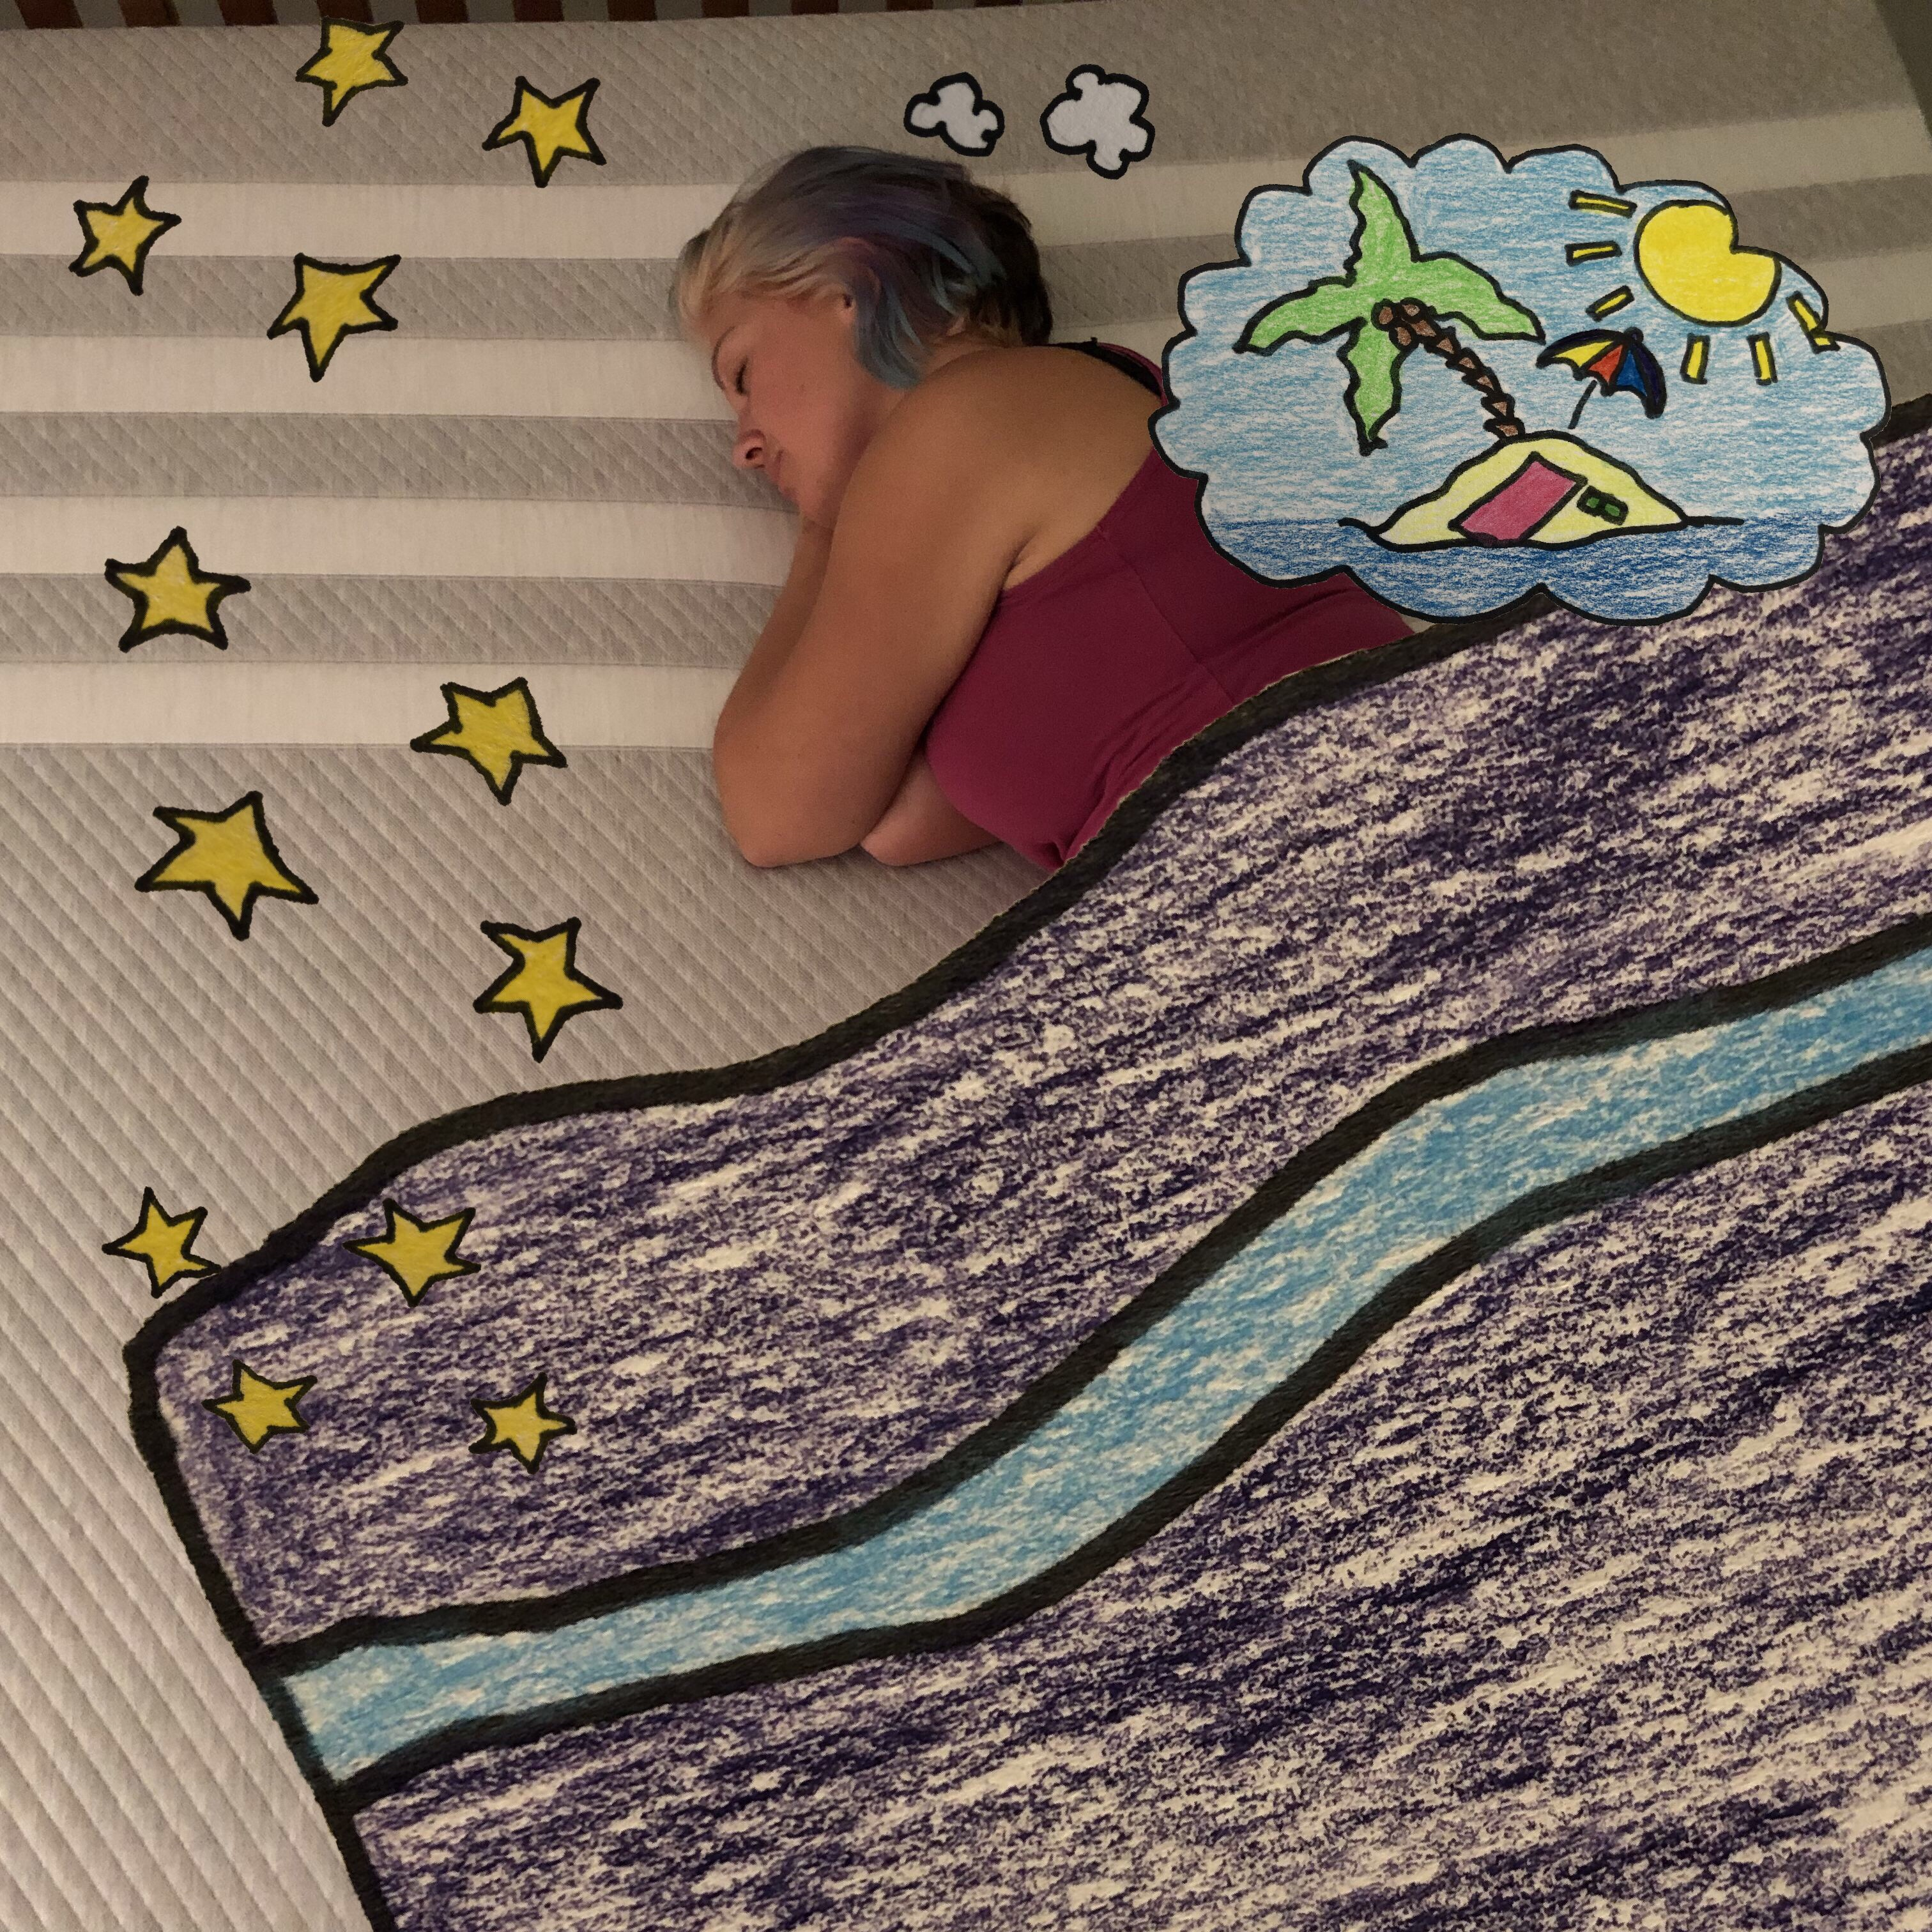 A photo of me pretending to be asleep on our new Leesa Mattress with a hand drawn duvet and a dream cloud of a tropical island over laid.